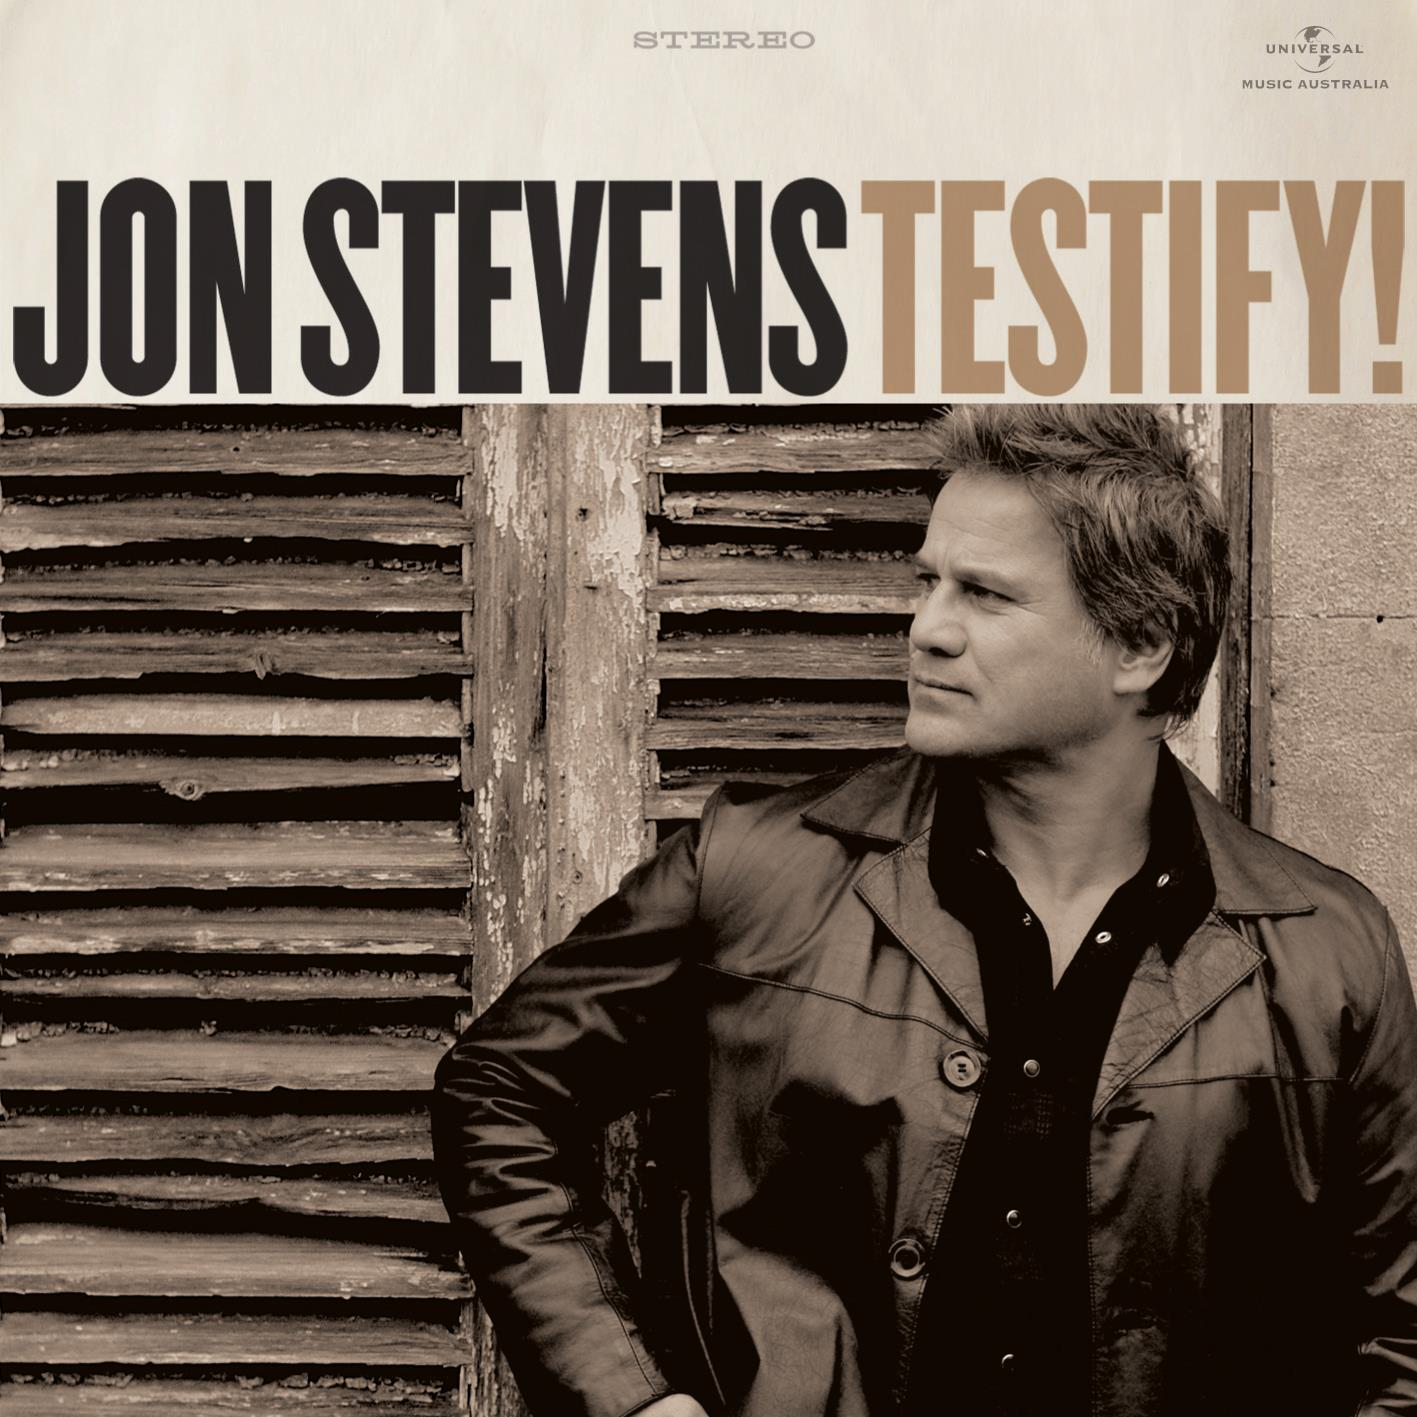 Jon Stevens to release 'Testify!' on 11/11/11